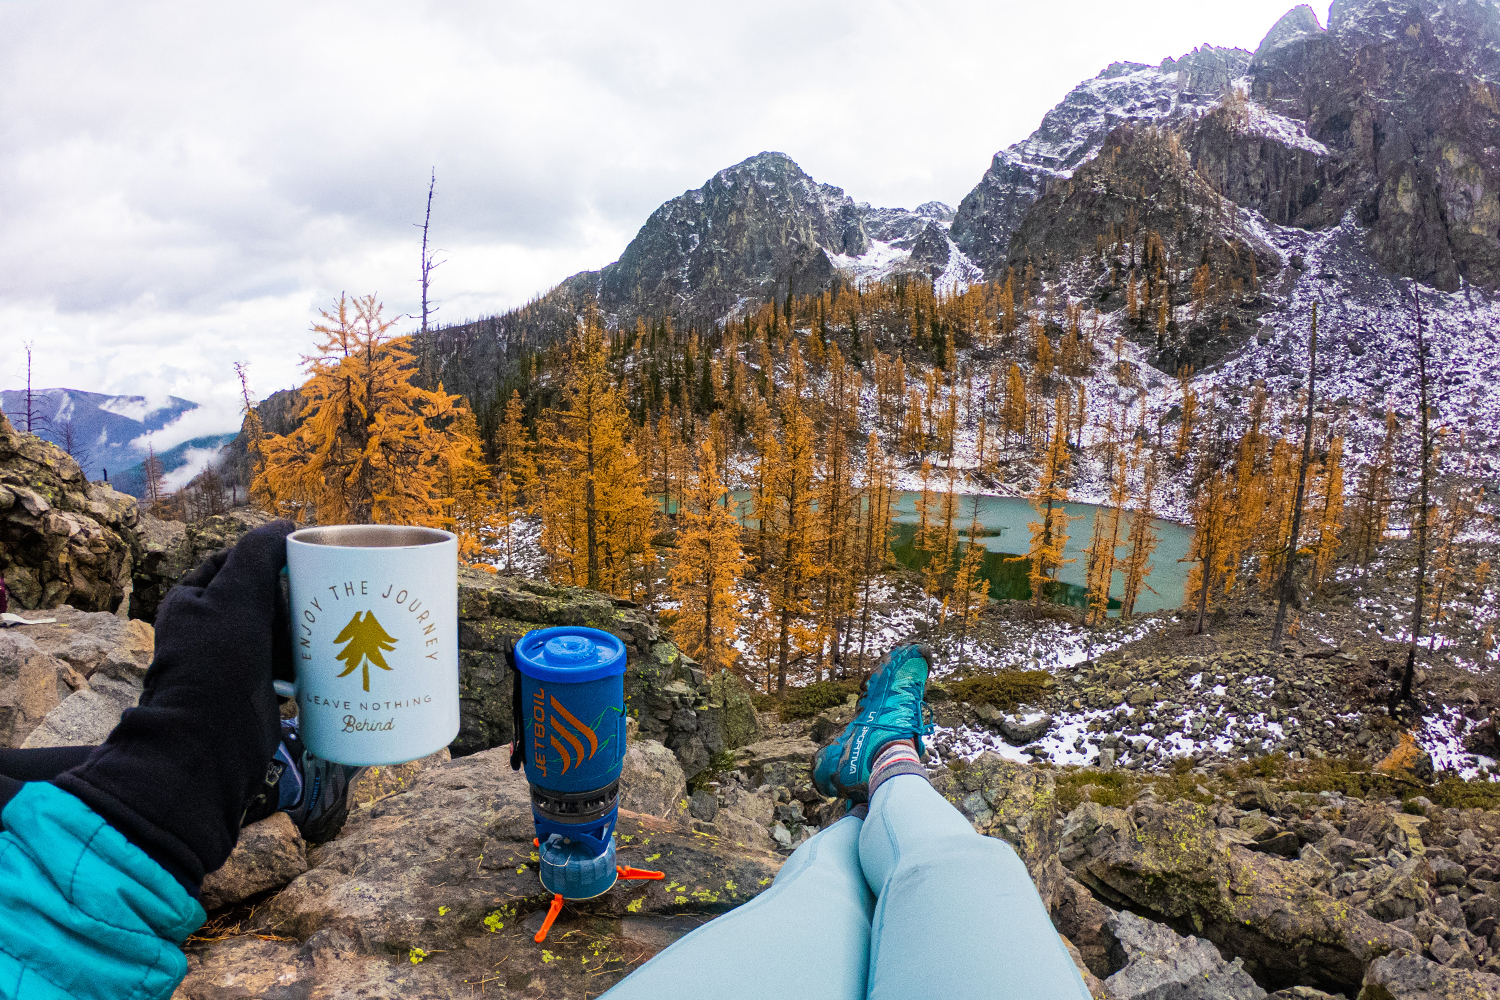 Leave No Trace: 7 Principles for Outdoor Adventures